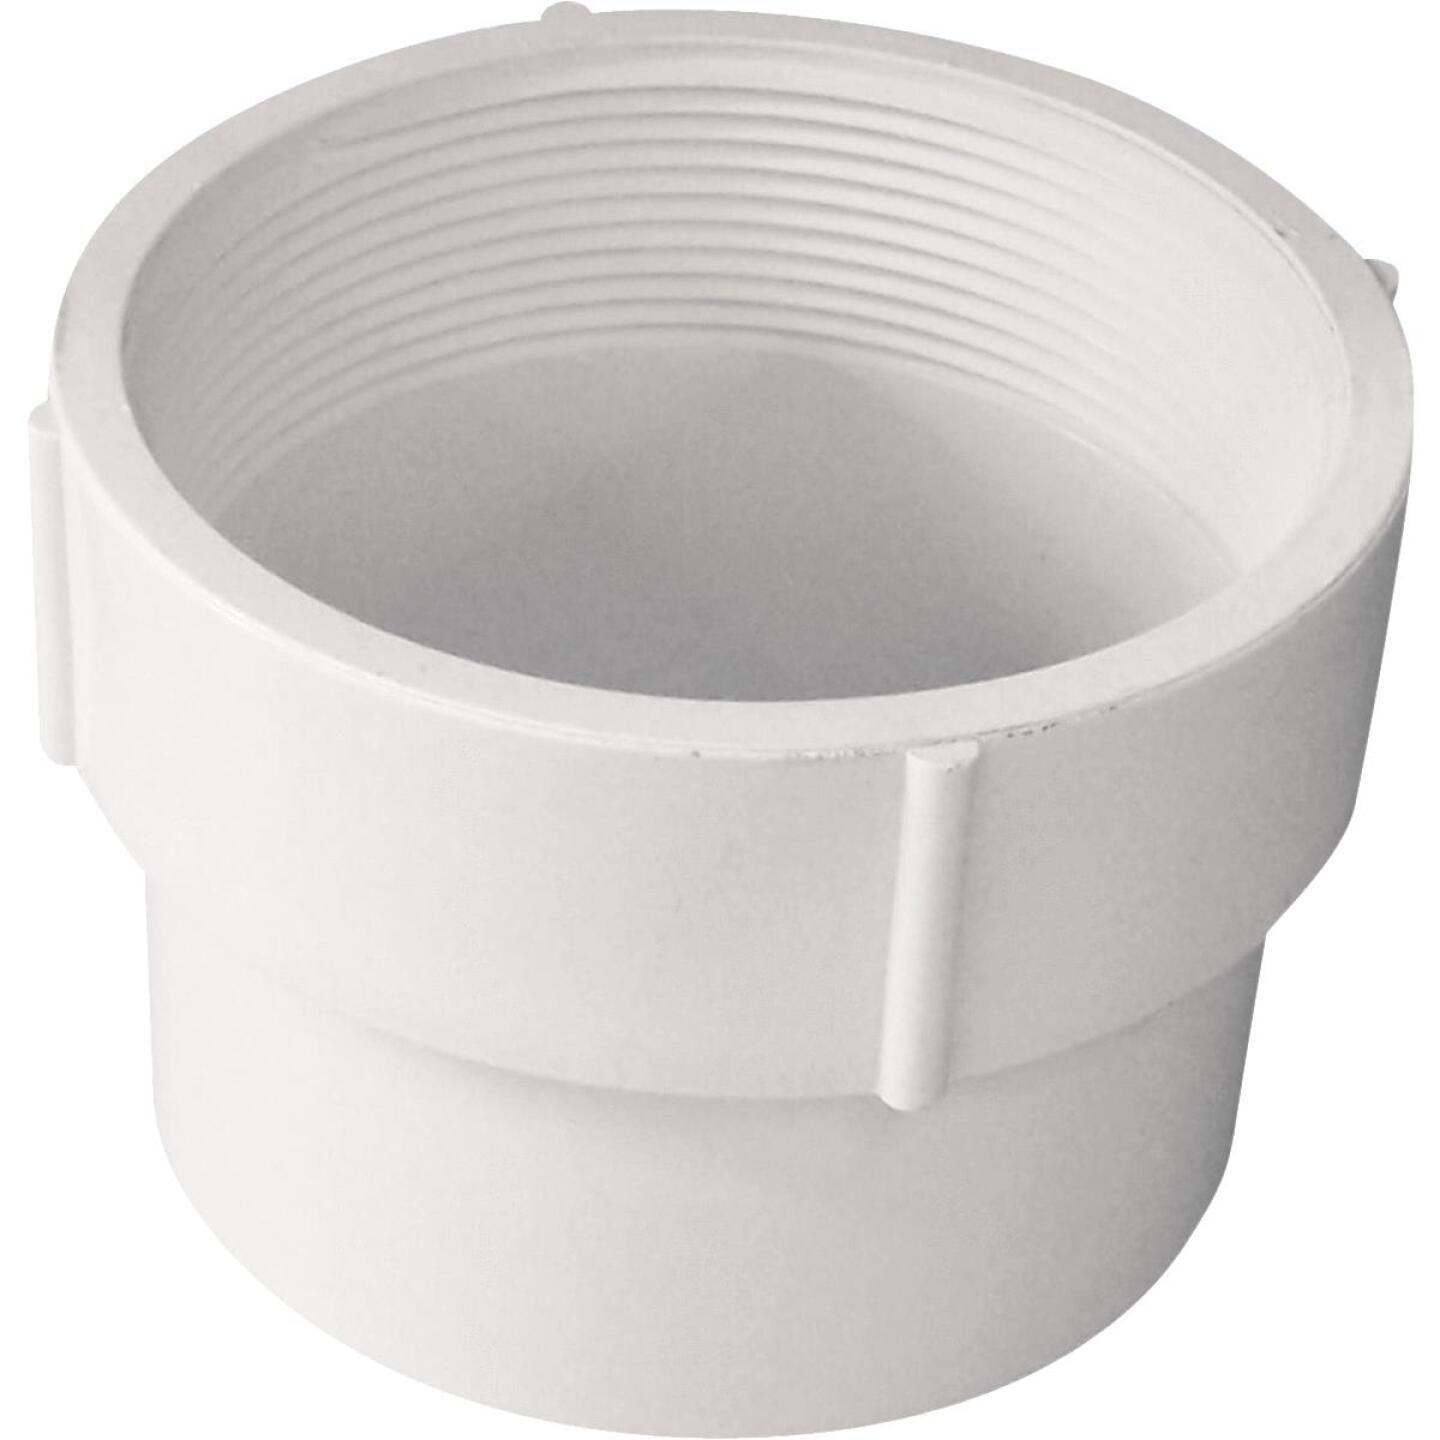 IPEX 4 In. Female PVC Sewer and Drain Adapter Image 1